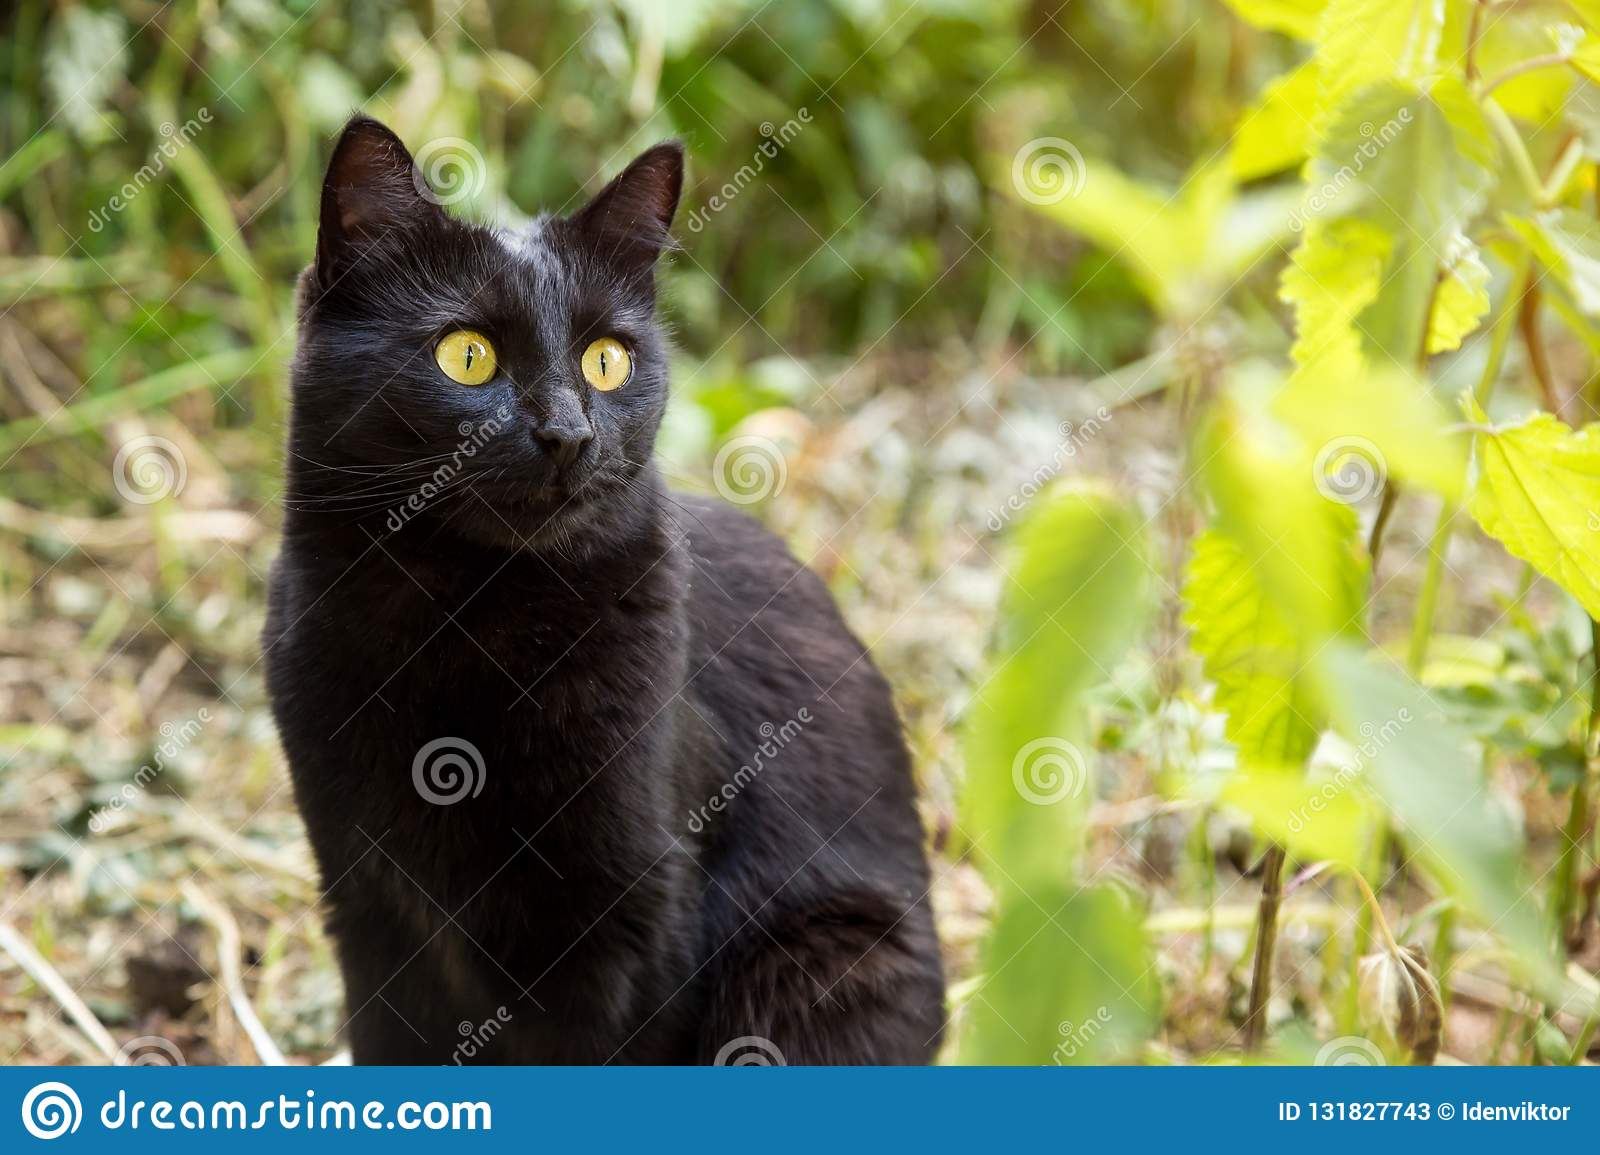 Beautiful Cute Black Cat Portrait With Yellow Eyes Stock Image